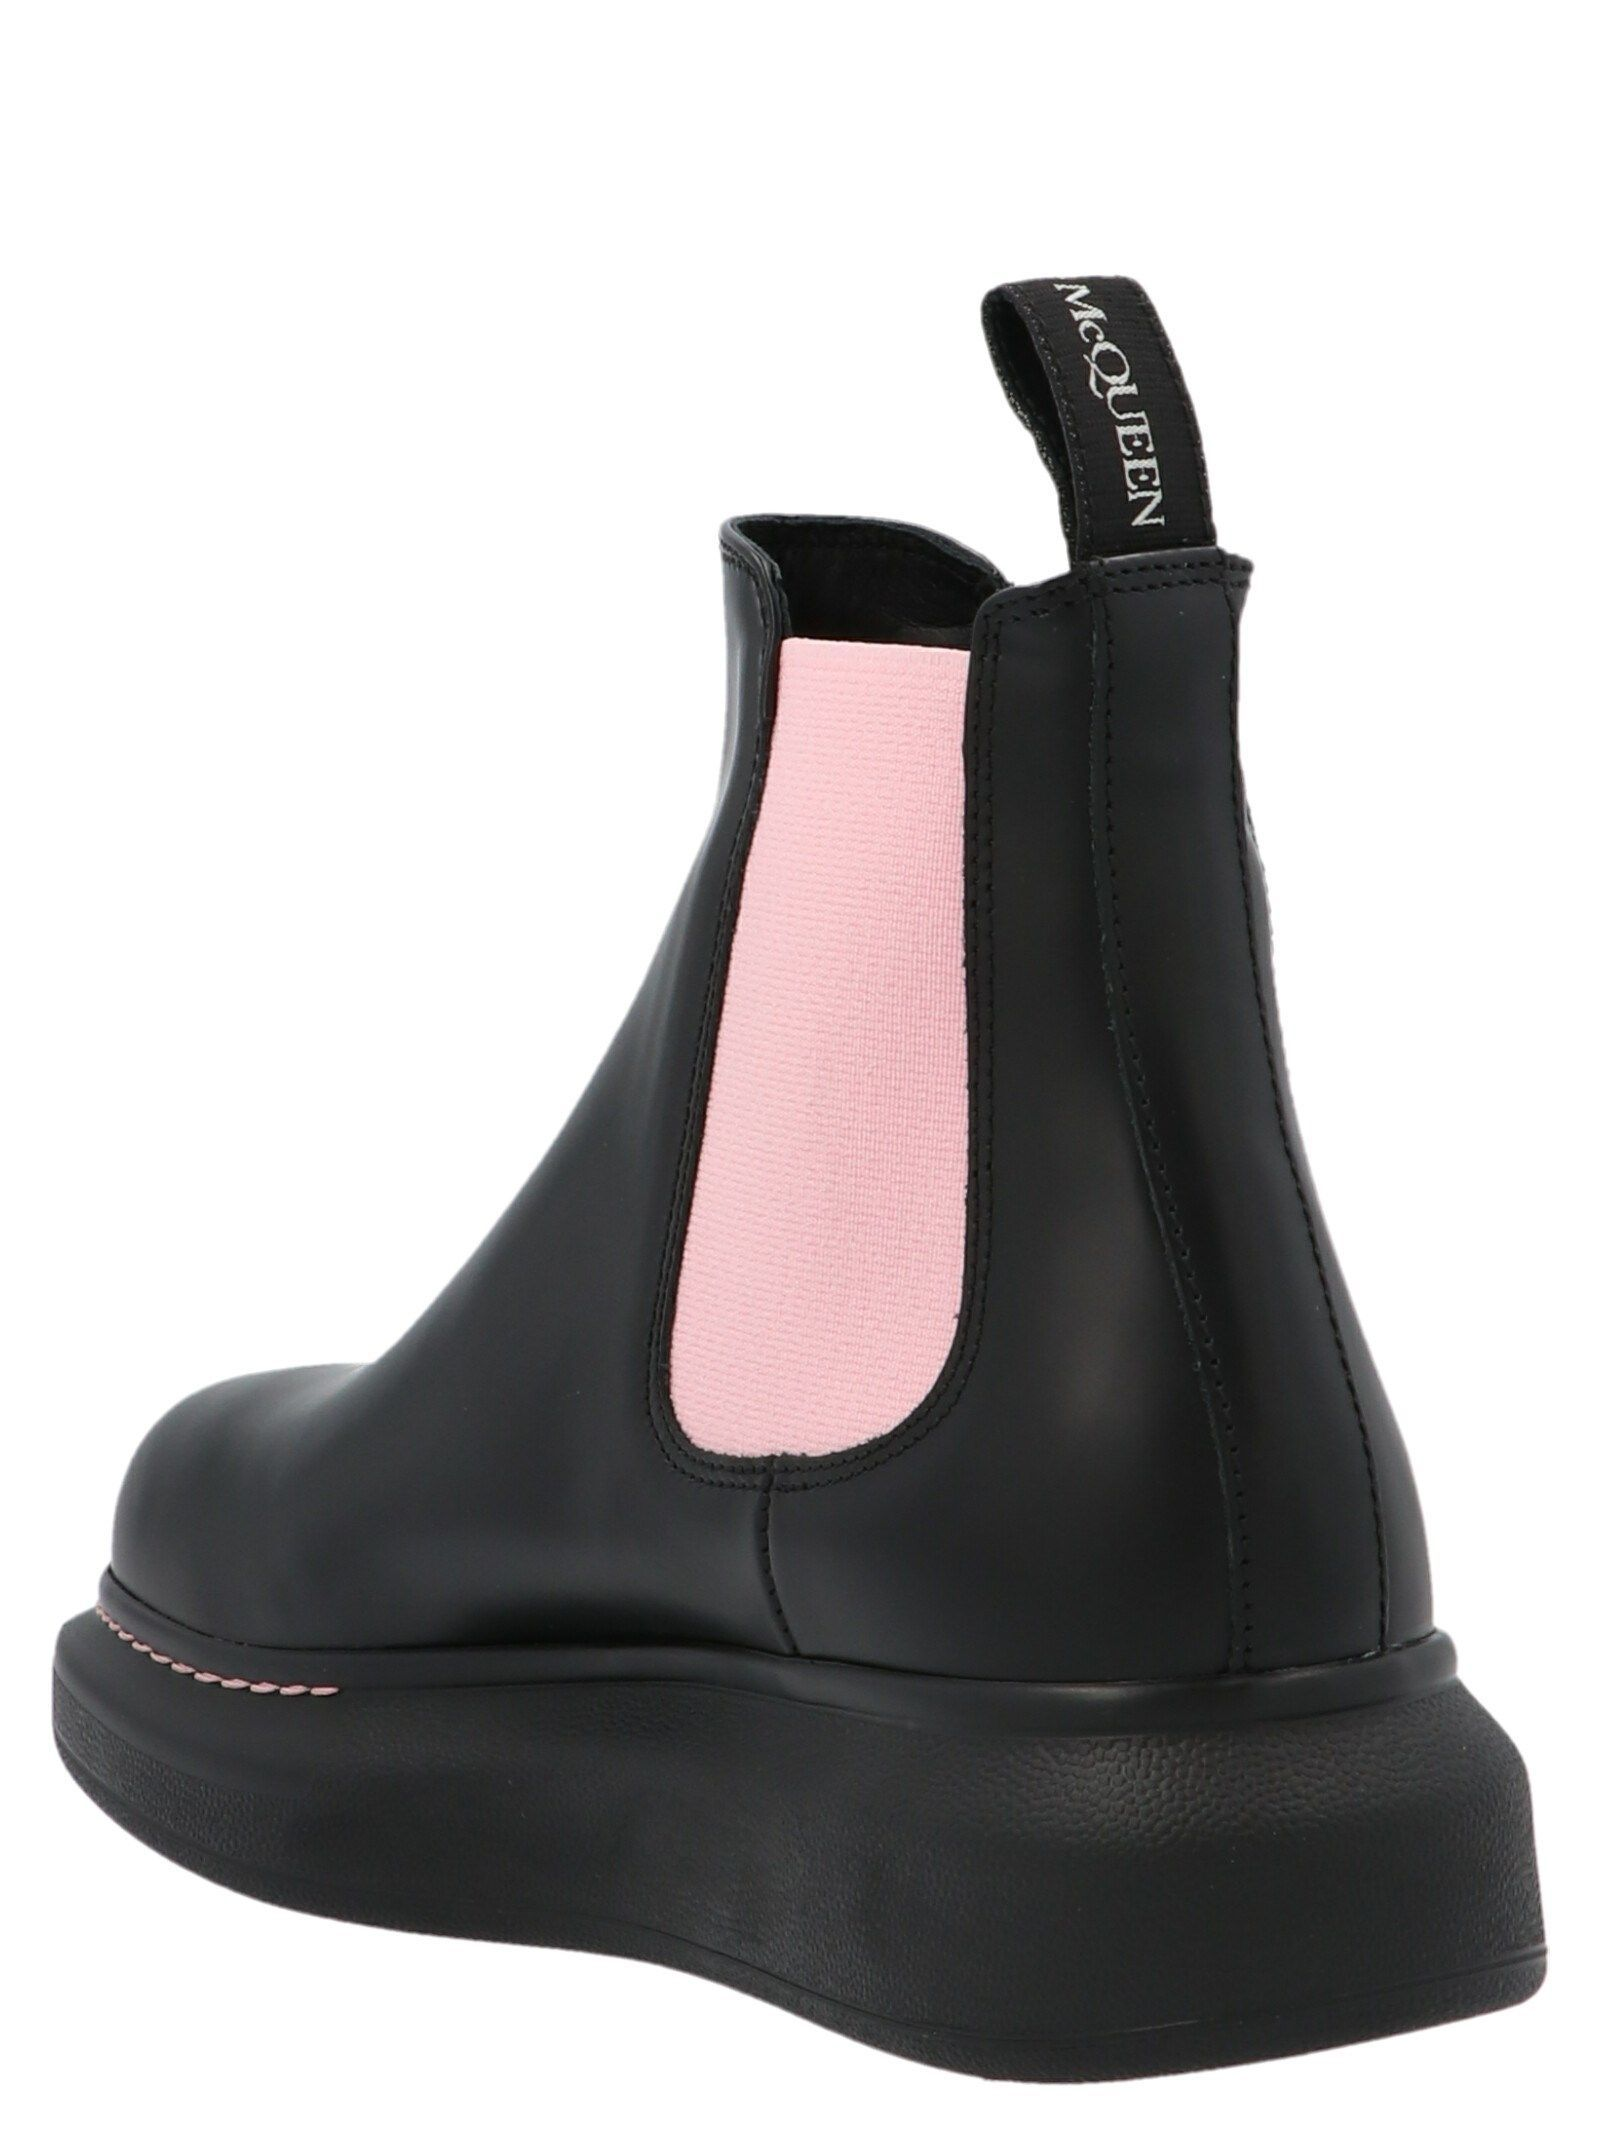 ALEXANDER MCQUEEN WOMEN'S 586398WHX521123 BLACK LEATHER ANKLE BOOTS